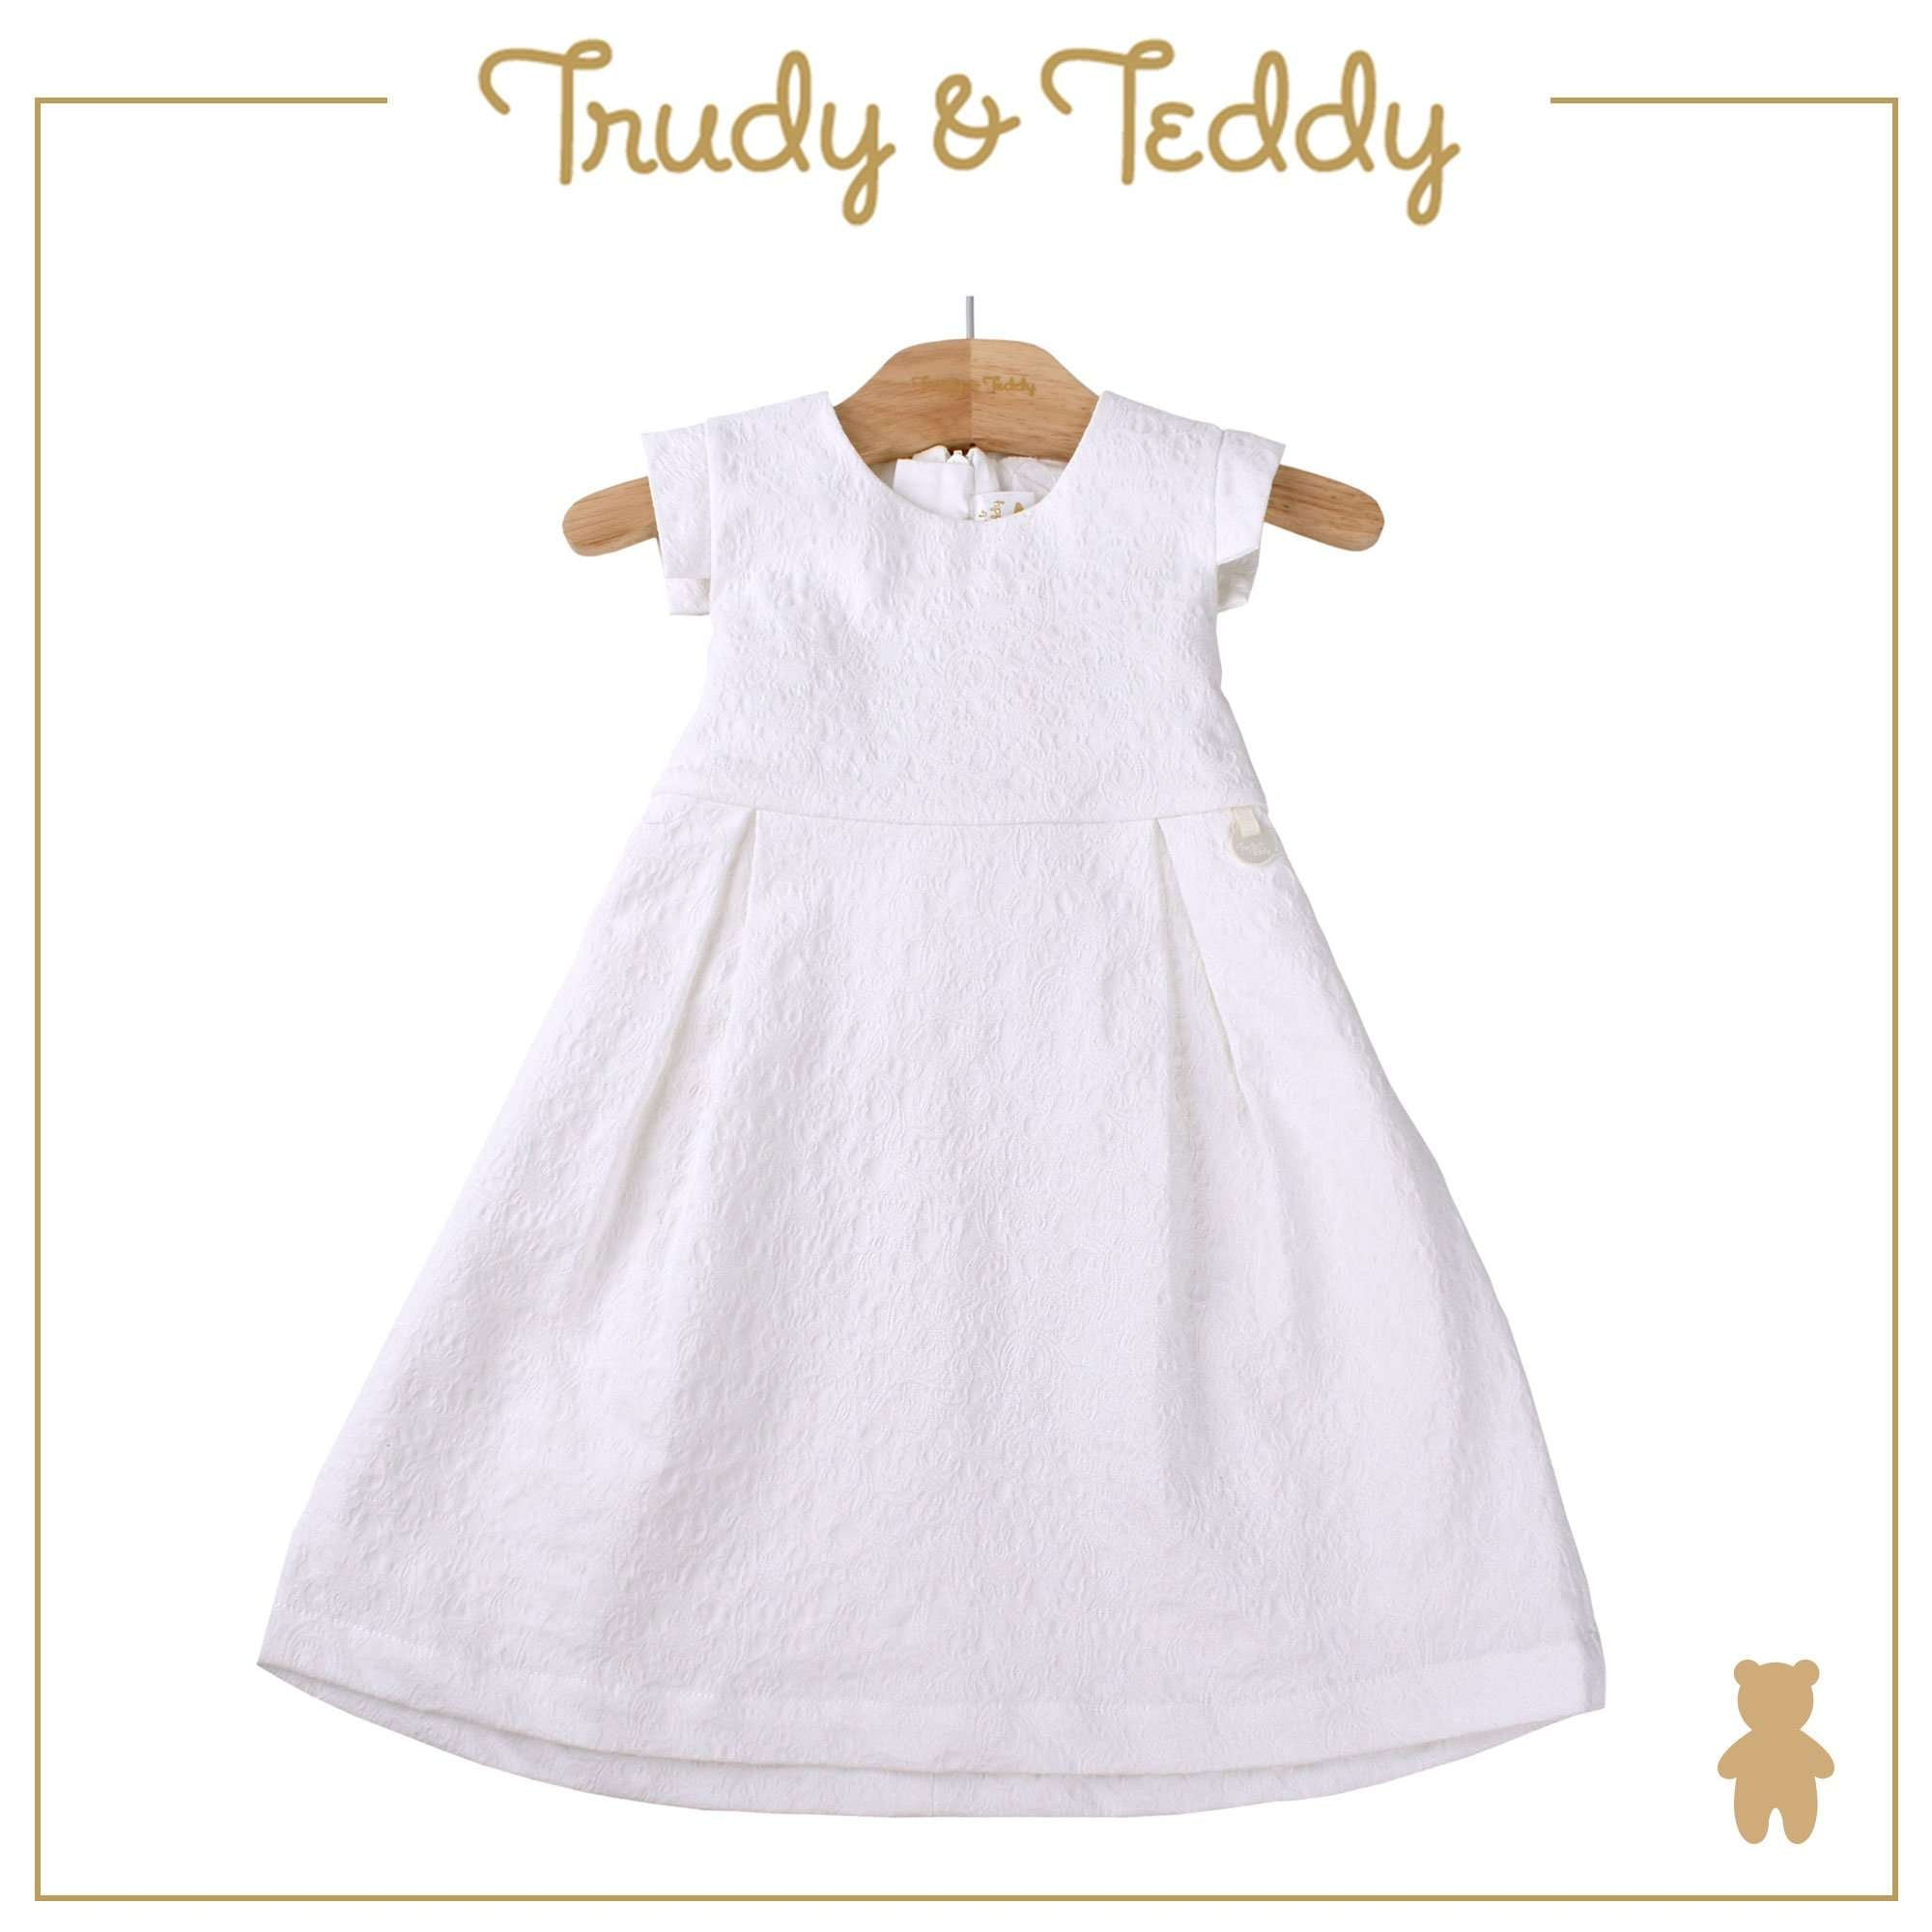 Trudy & Teddy Toddler Girl Woven Short Sleeve Dress- White 815173-311 : Buy Trudy & Teddy online at CMG.MY